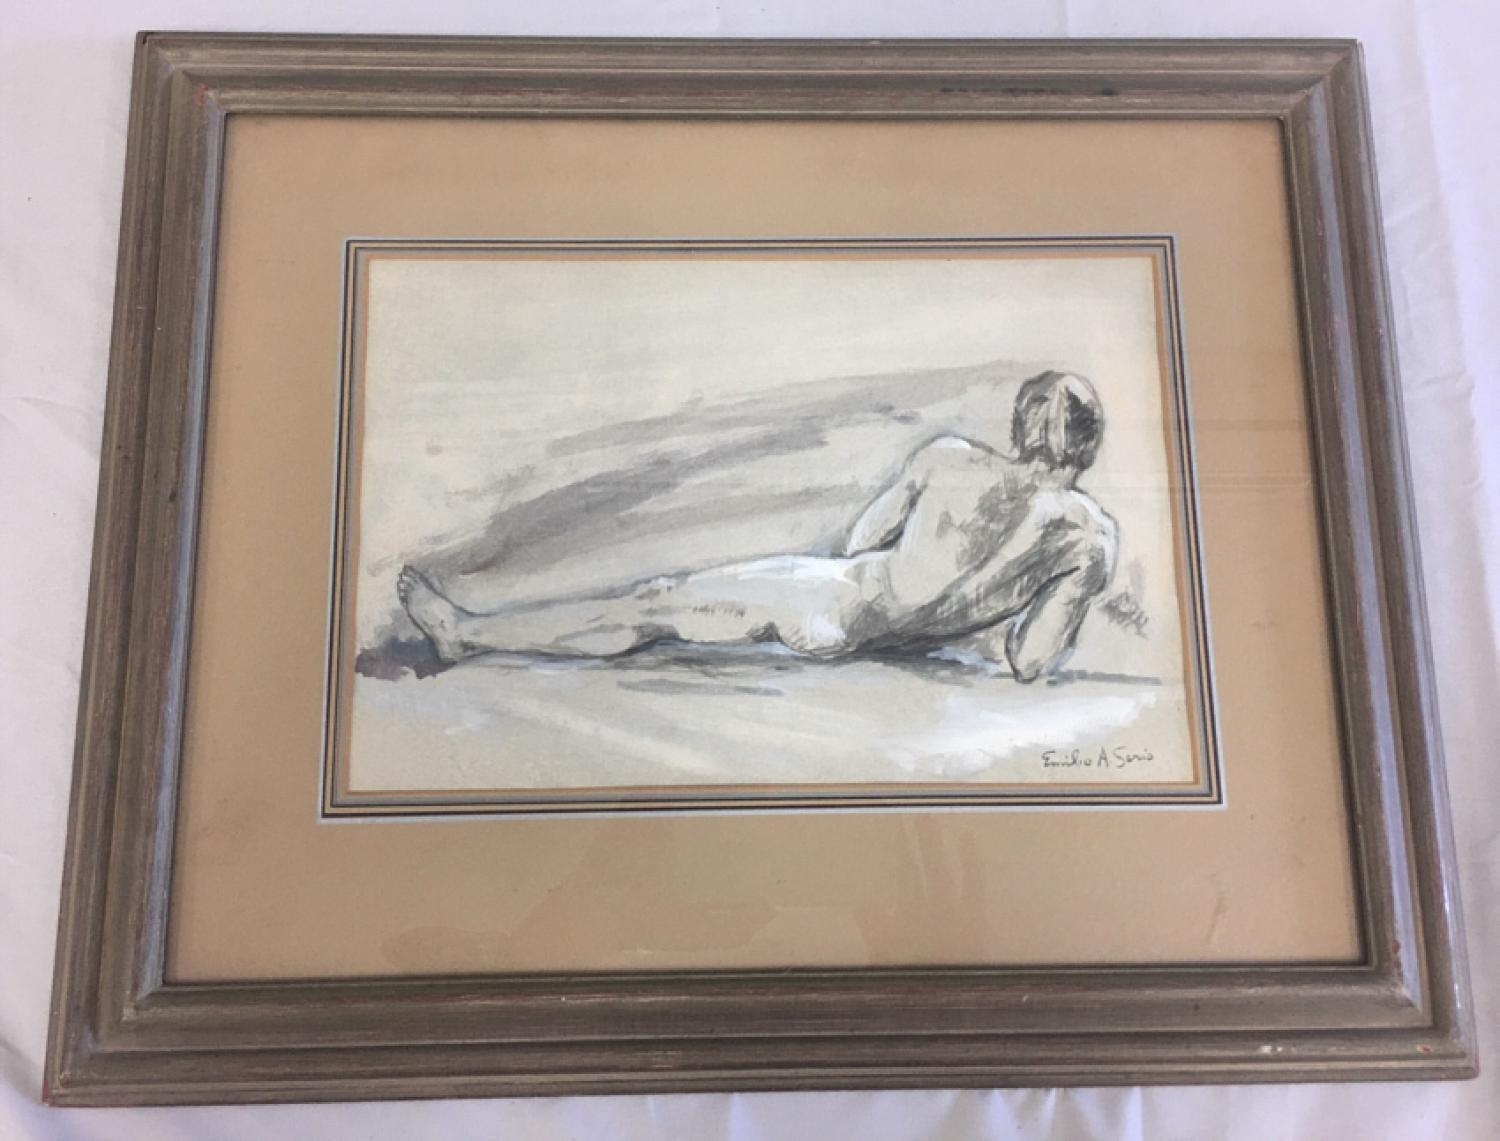 Emilio A Serio watercolor of male nude